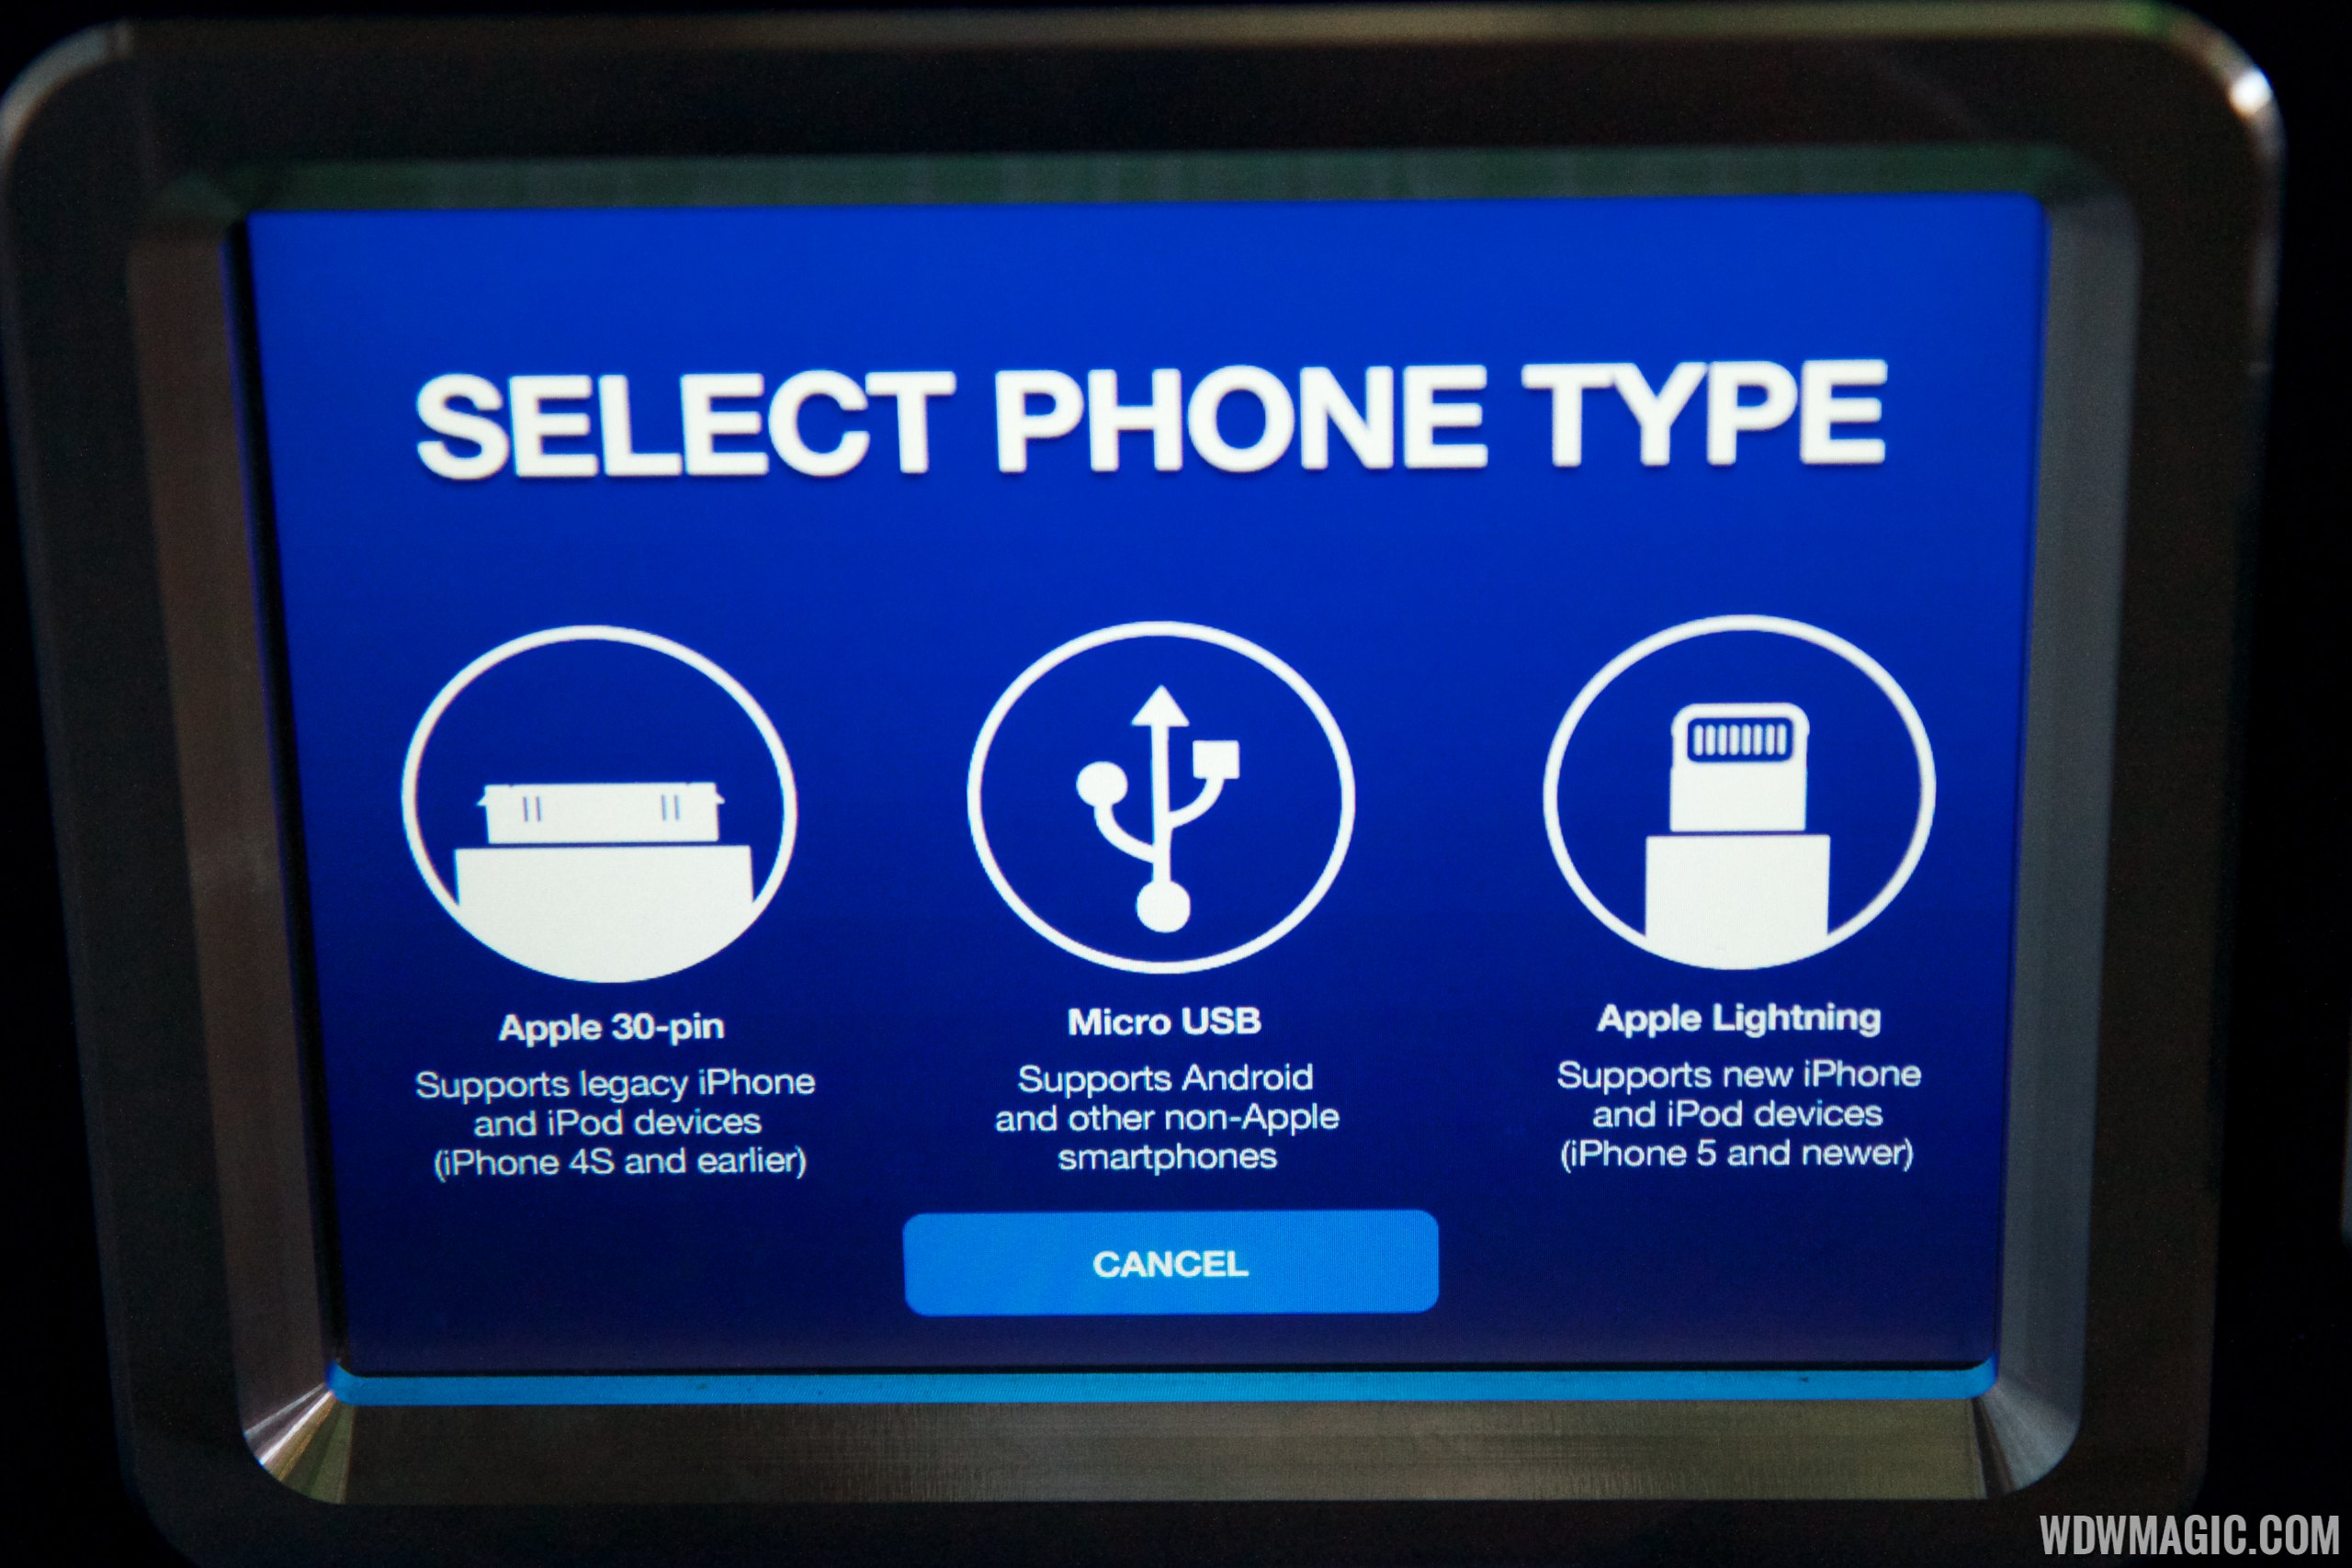 Select the phone type